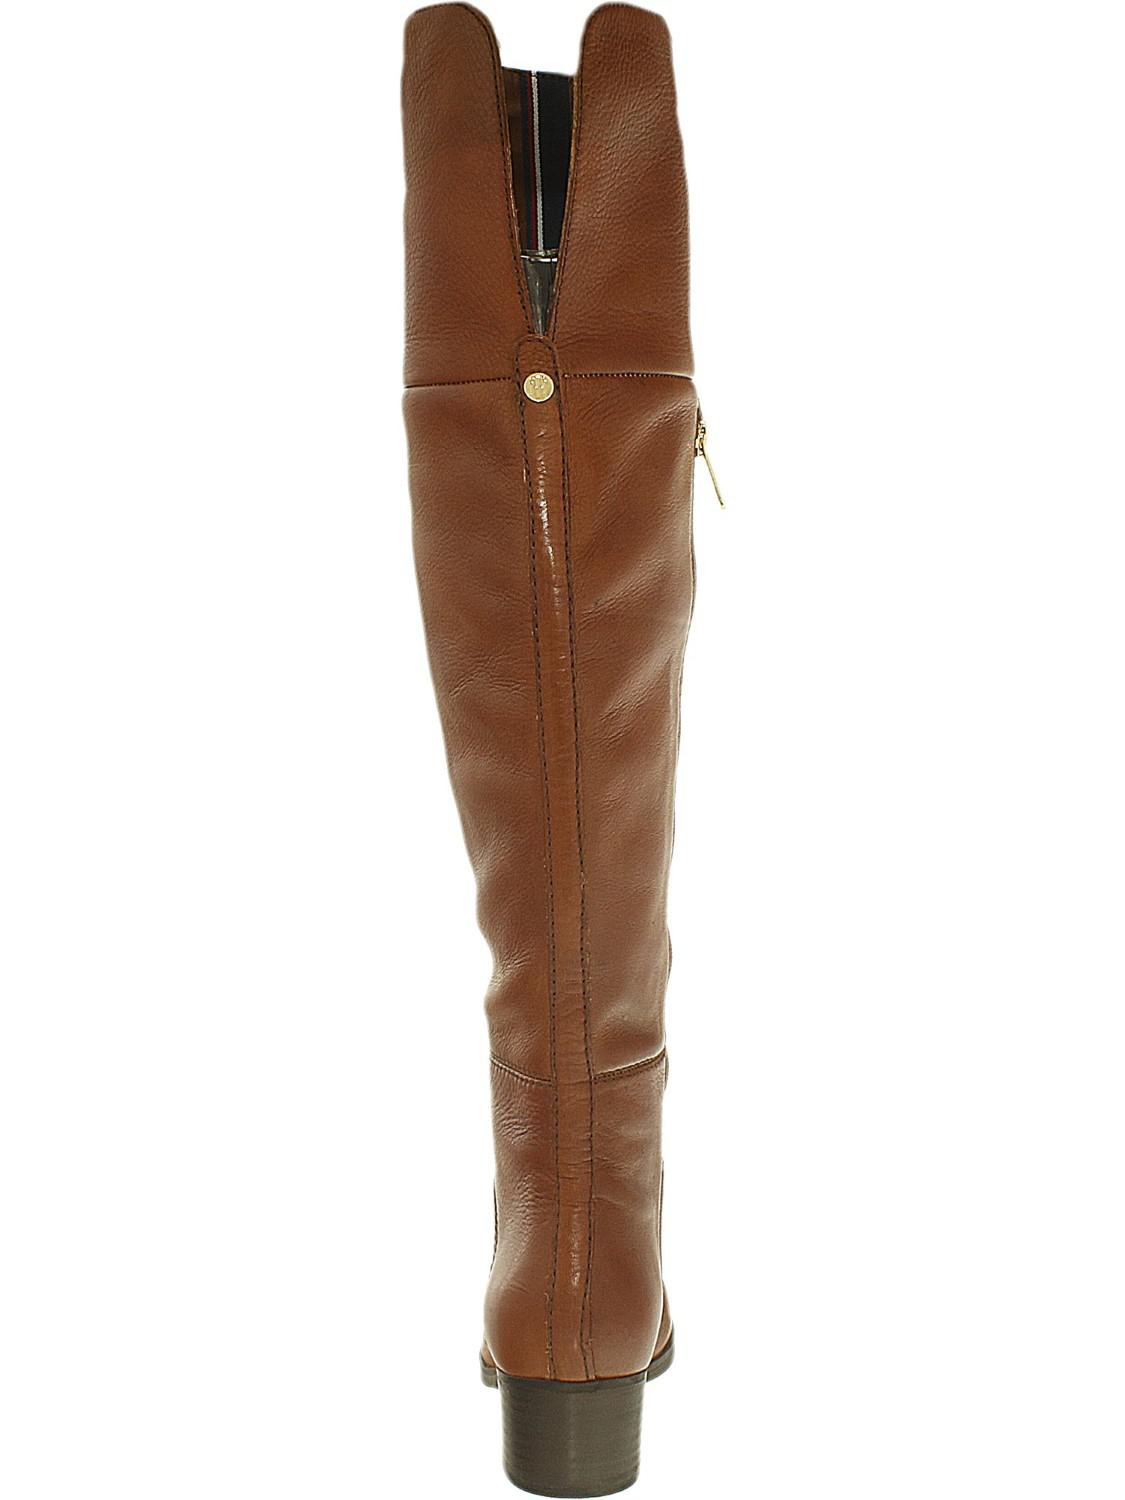 1b09dfe248694f Lyst - Tommy Hilfiger Gianna Leather Above The Knee Boot - 6.5m in Brown